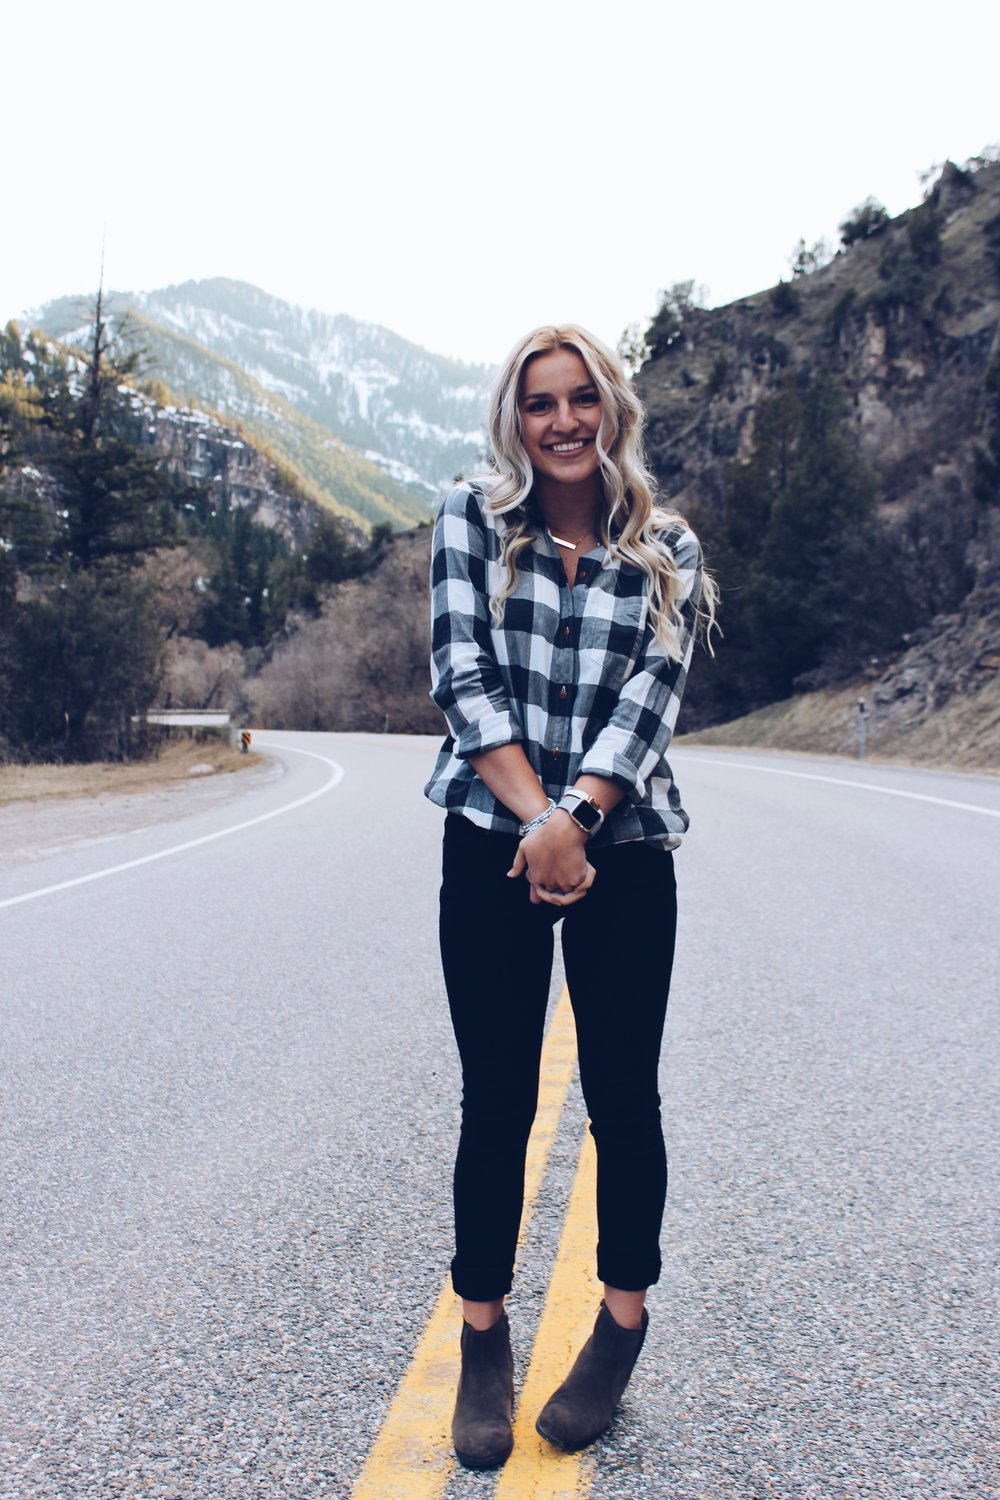 Fall lookbook inspiration. The pair of jeans every girl needs